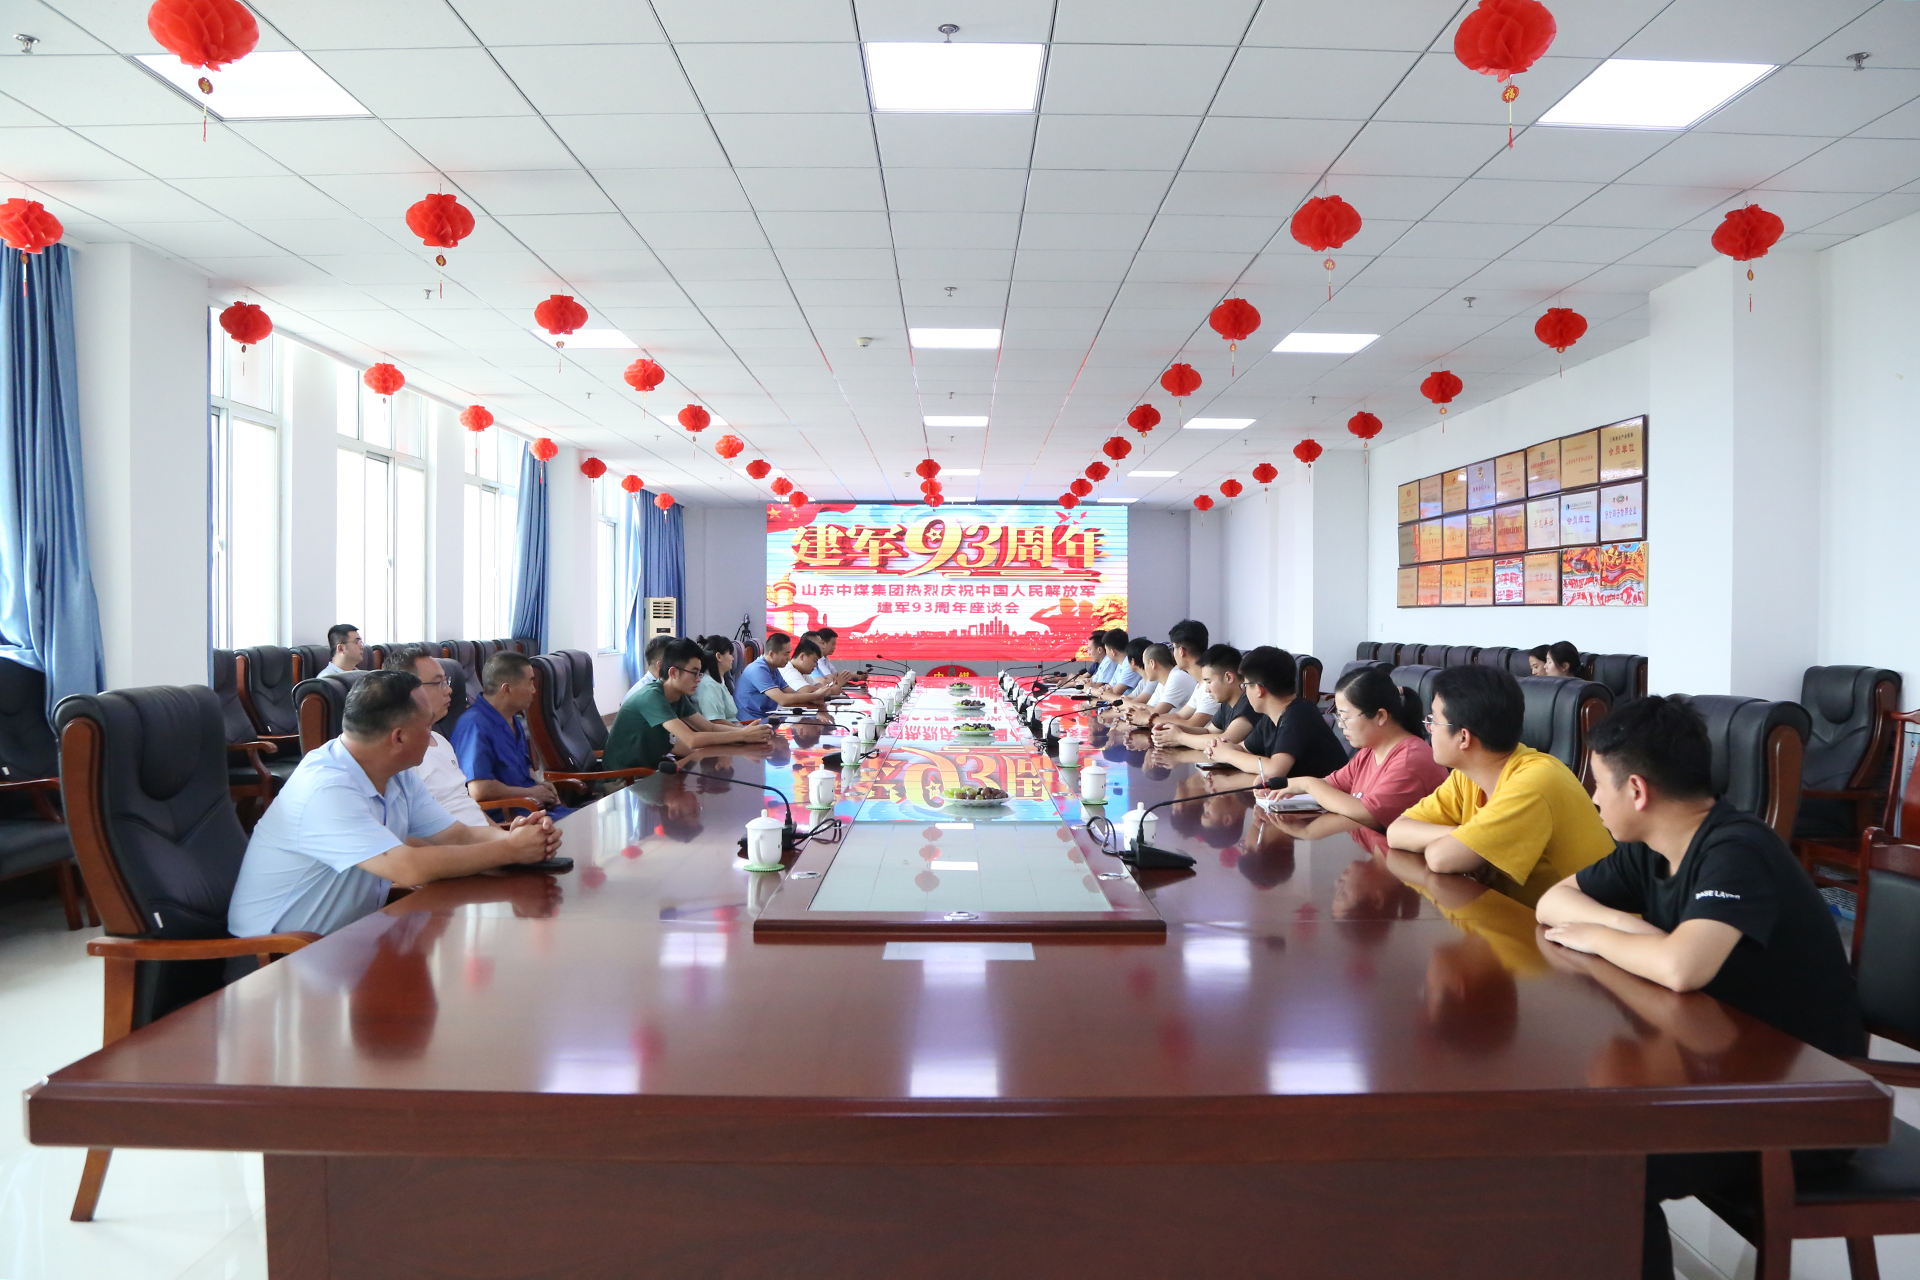 CPC Committee Of China Coal Group Held Theme Activities To Celebrate The 93rd Anniversary Of The Founding Of The Army